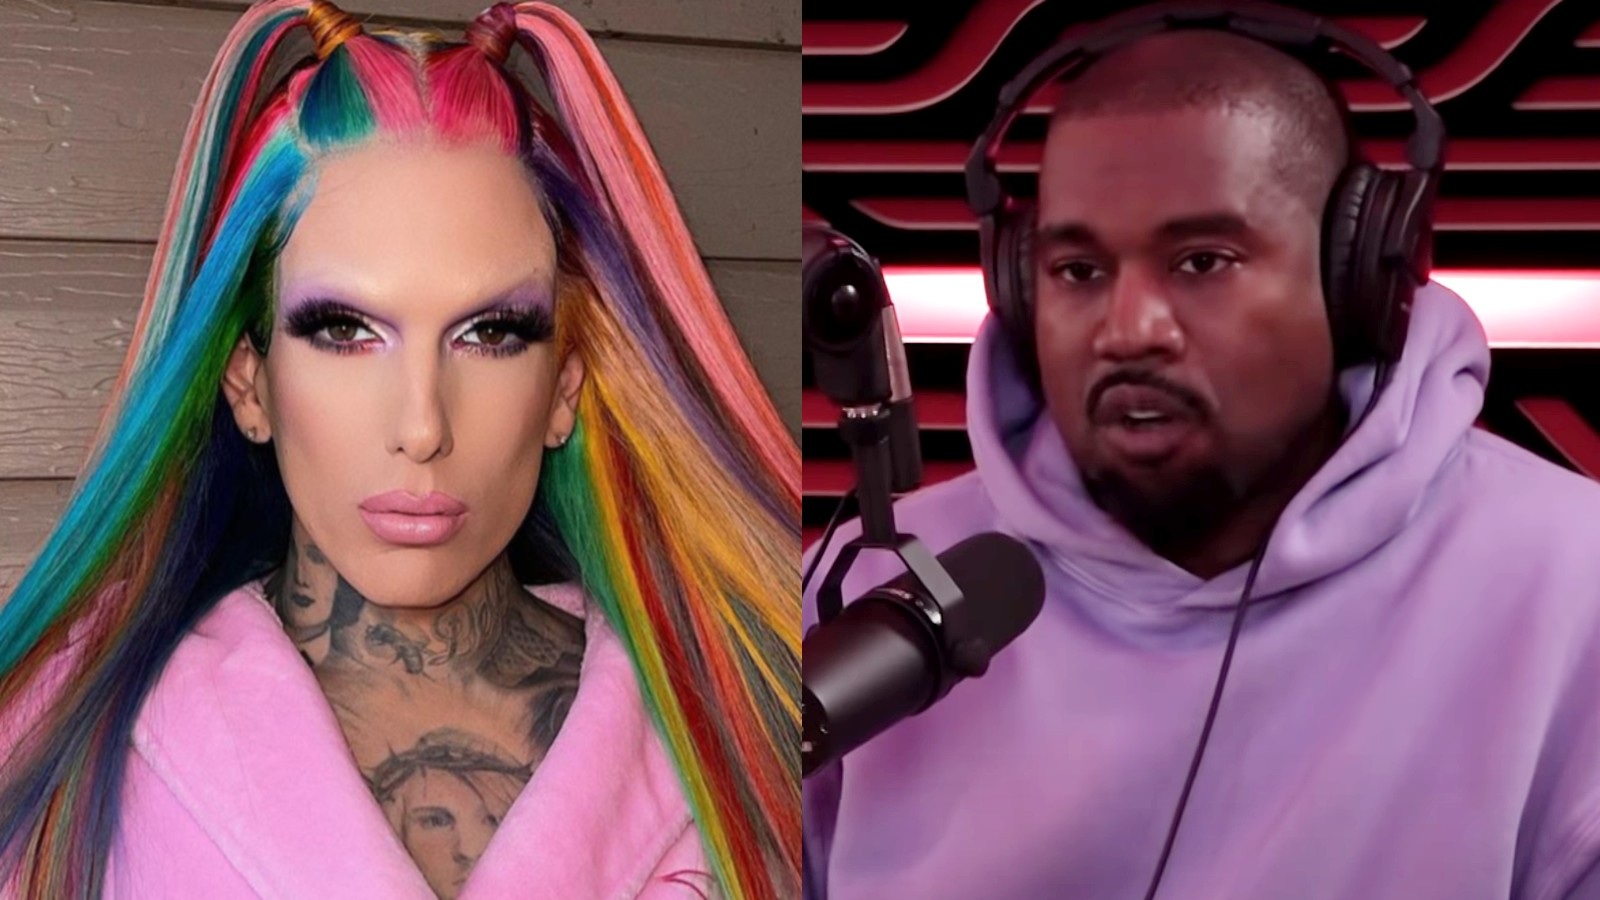 Jeffree star in an Instagram photo next to Kanye West on the Joe Rogan podcast